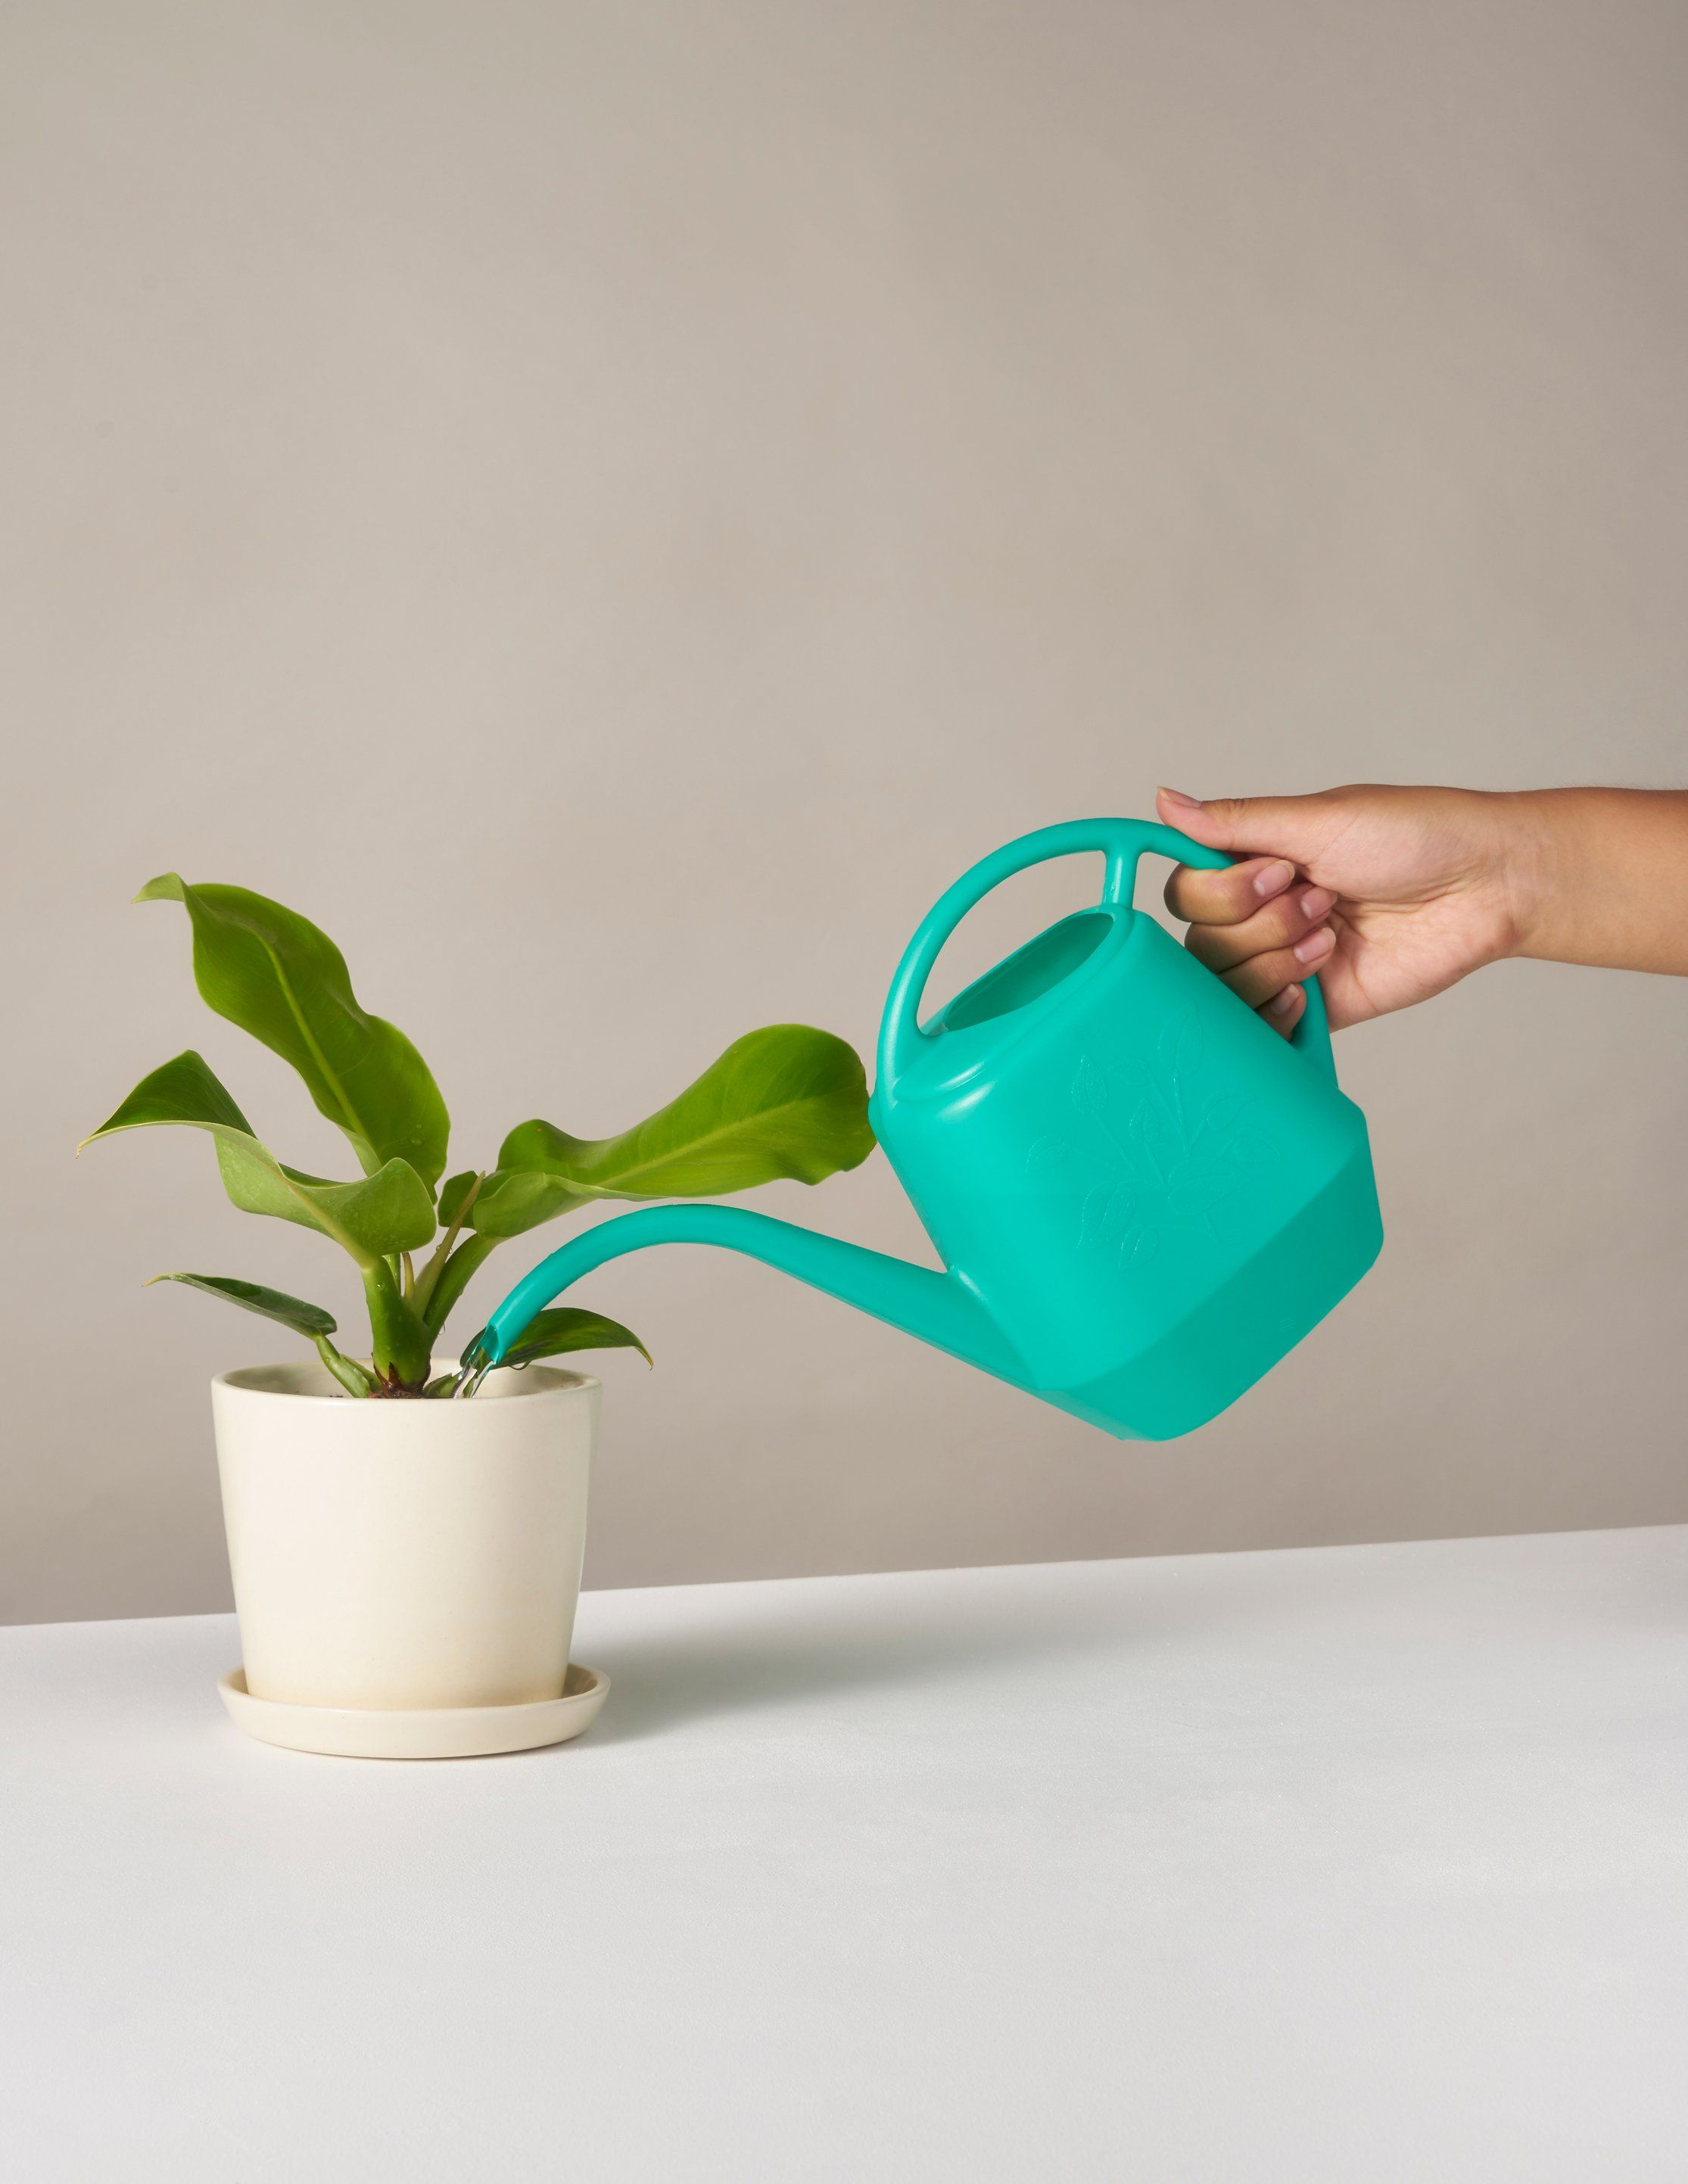 Watering Can With Images Small